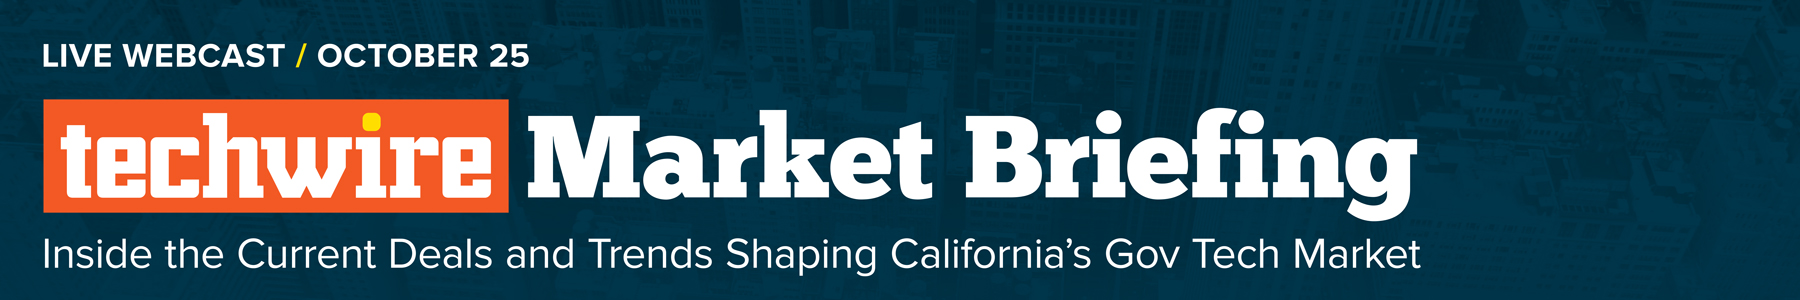 Techwire Market Briefing - Inside the Current Deals and Trends Shaping California's Gov Tech Market